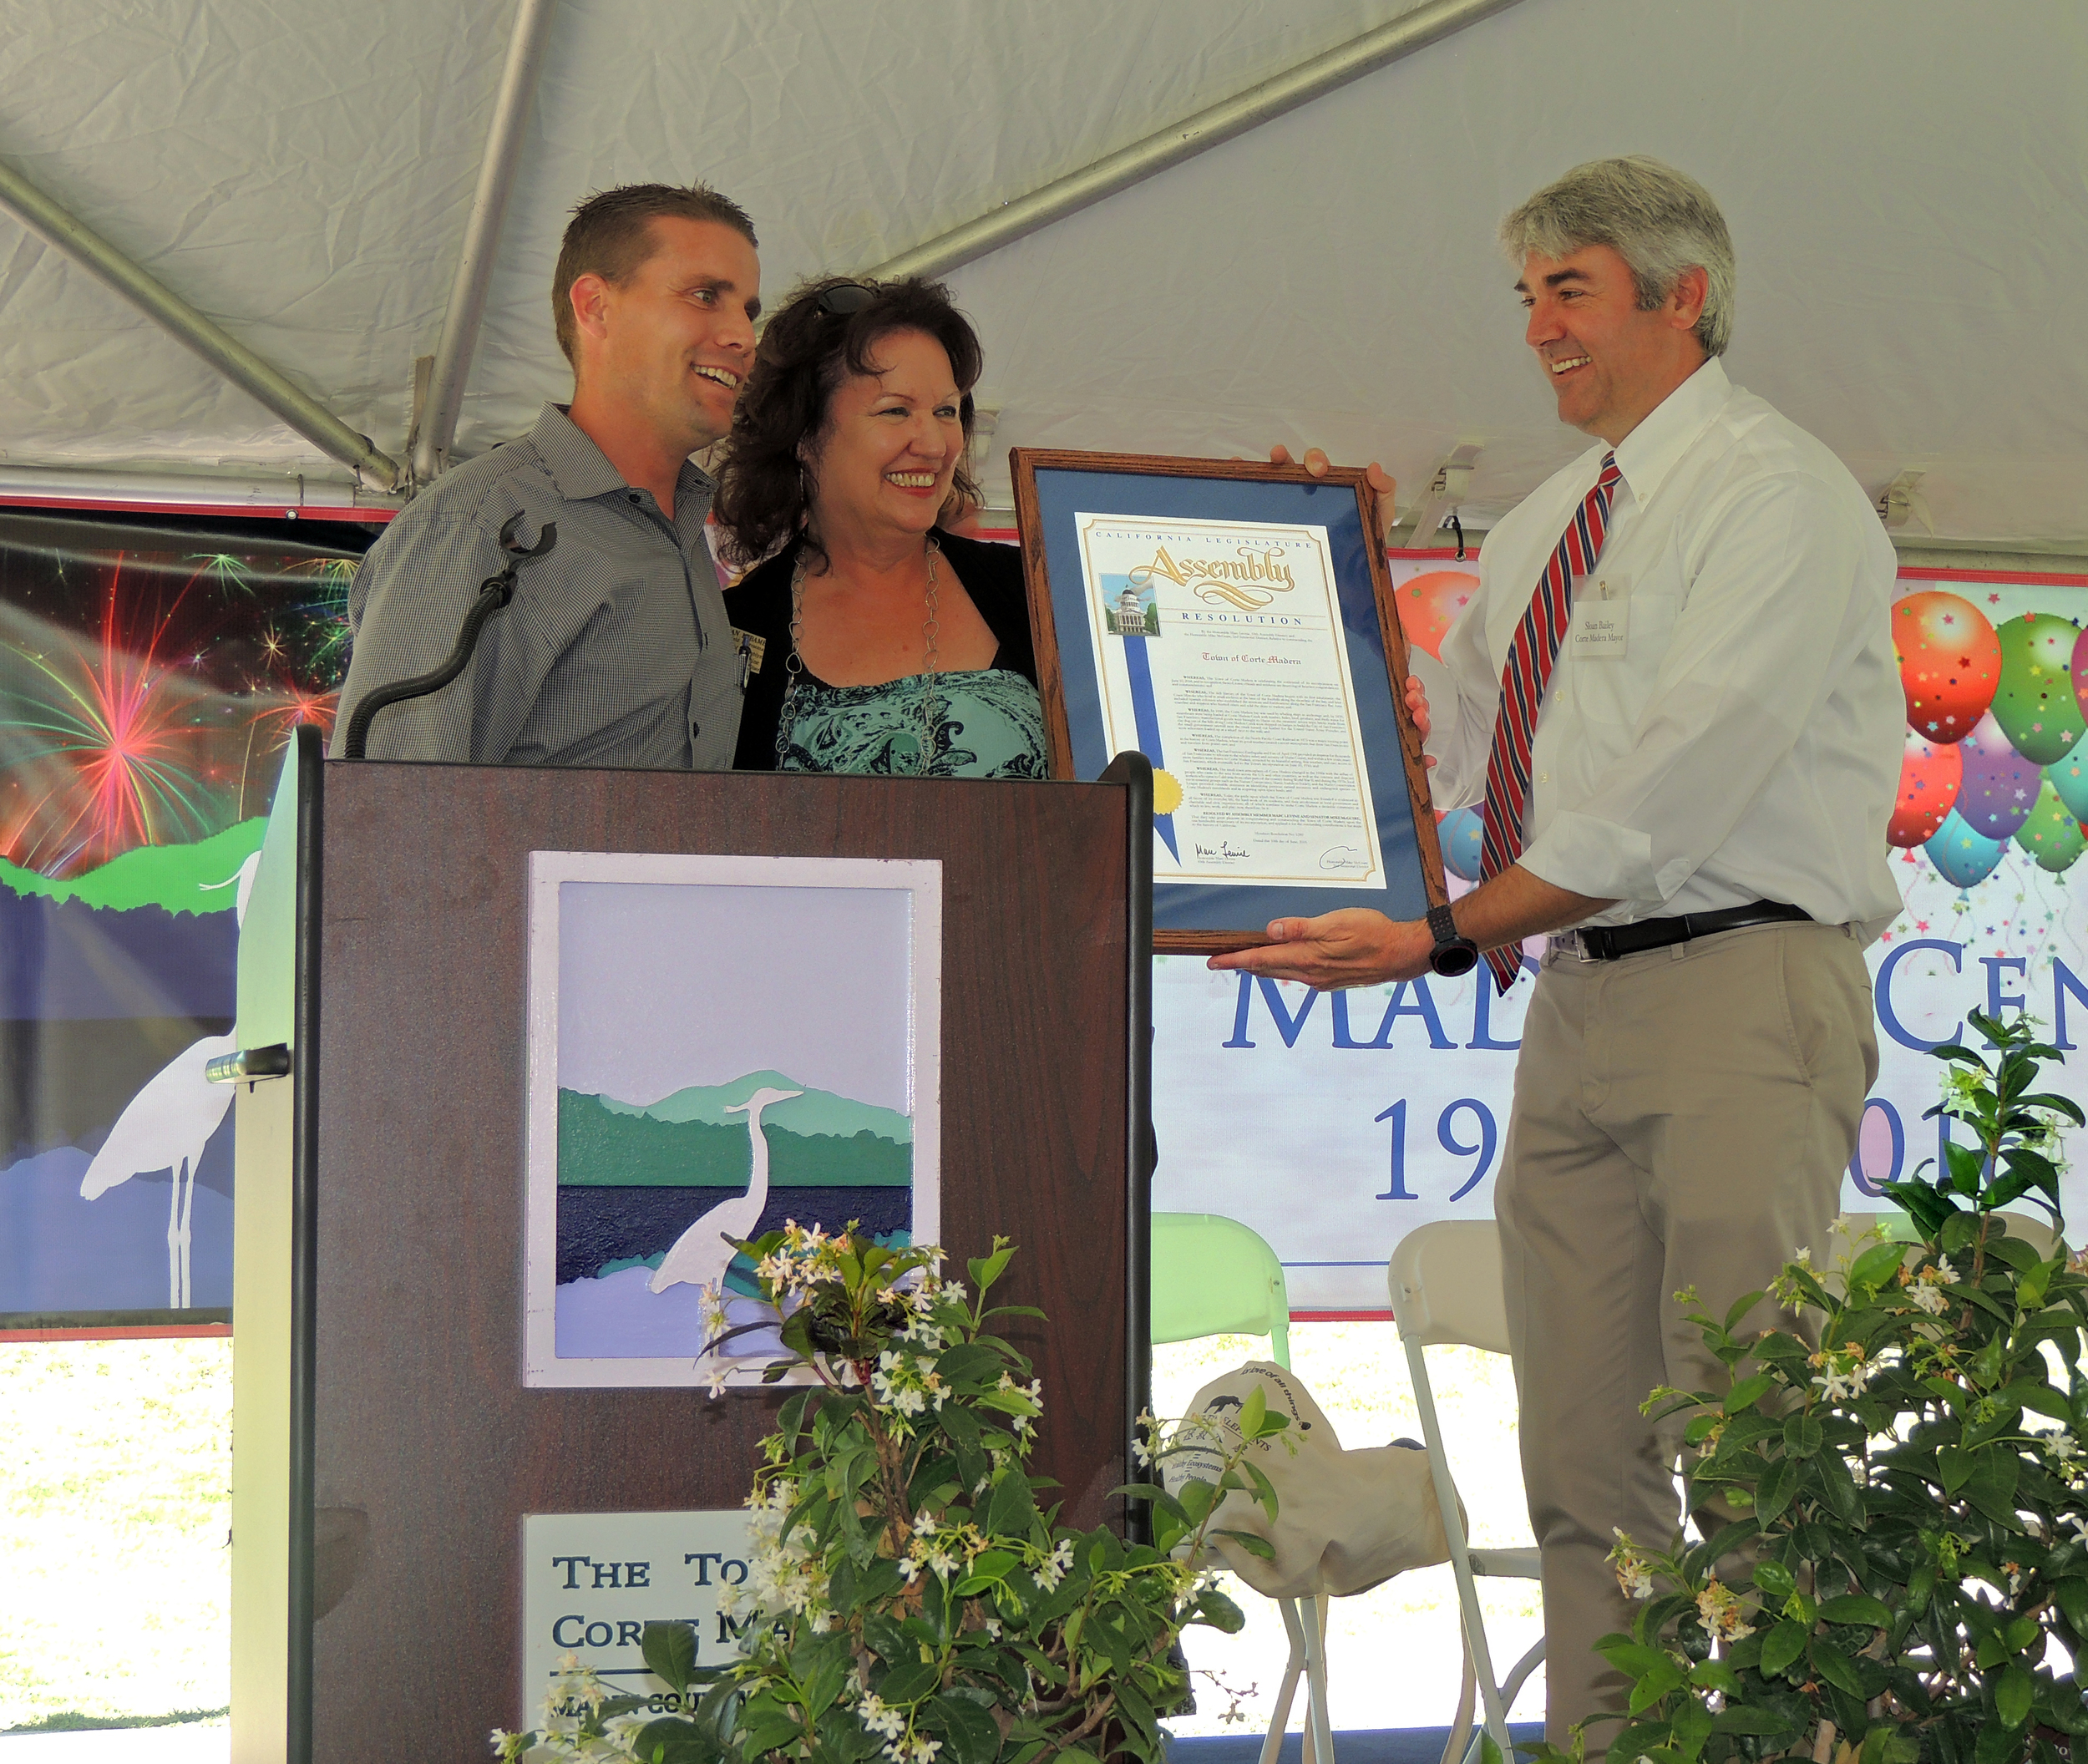 SENATOR MIKE MCGUIRE AND ASSEMBLY MEMBER MARC LEVINE'S FIELD REPRESENTATIVE JOAN LUBAMERSKY PRESENT A PROCLAMATION TO MAYOR SLOAN BAILEY, HONORING CORTE MADERA'S CENTENNIAL